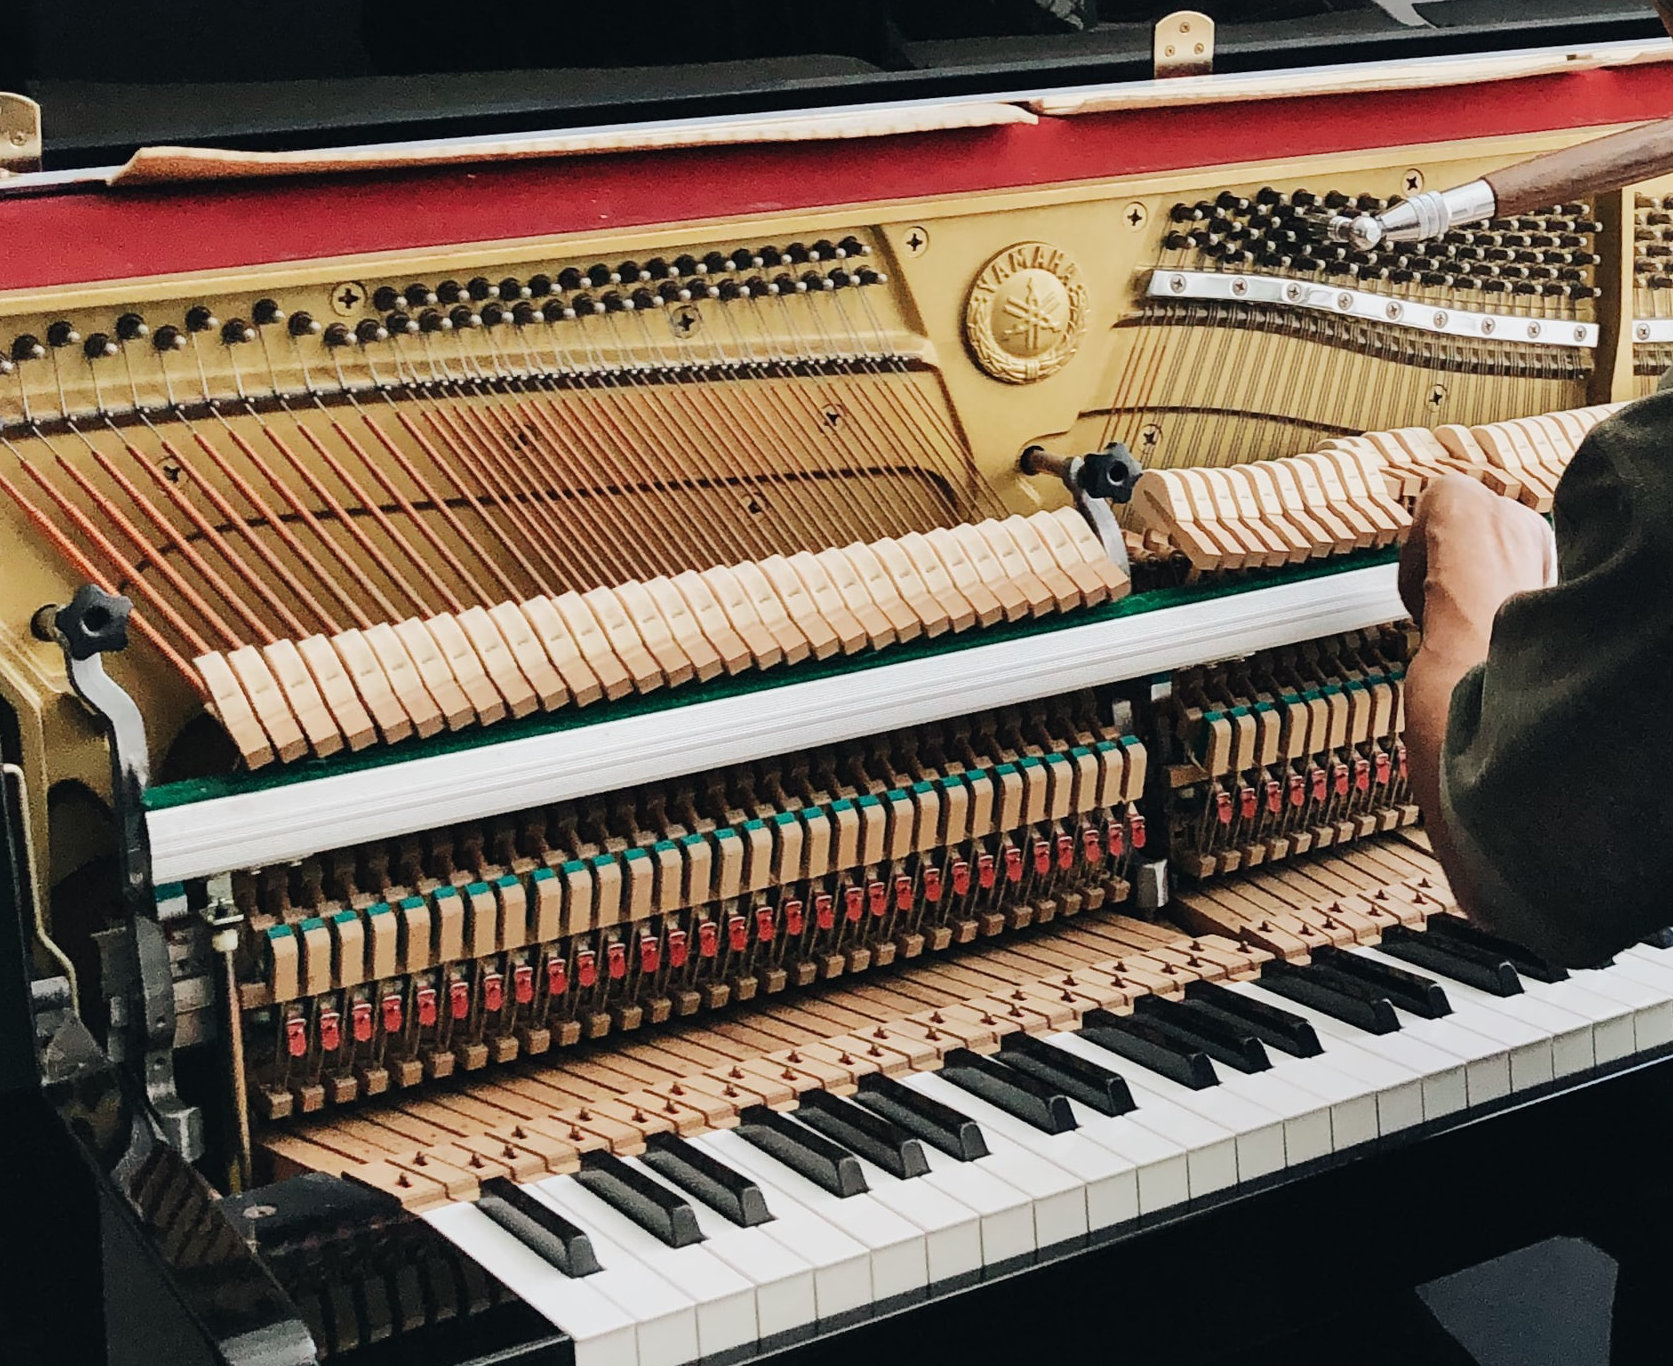 Piano tuner tuning an upright piano